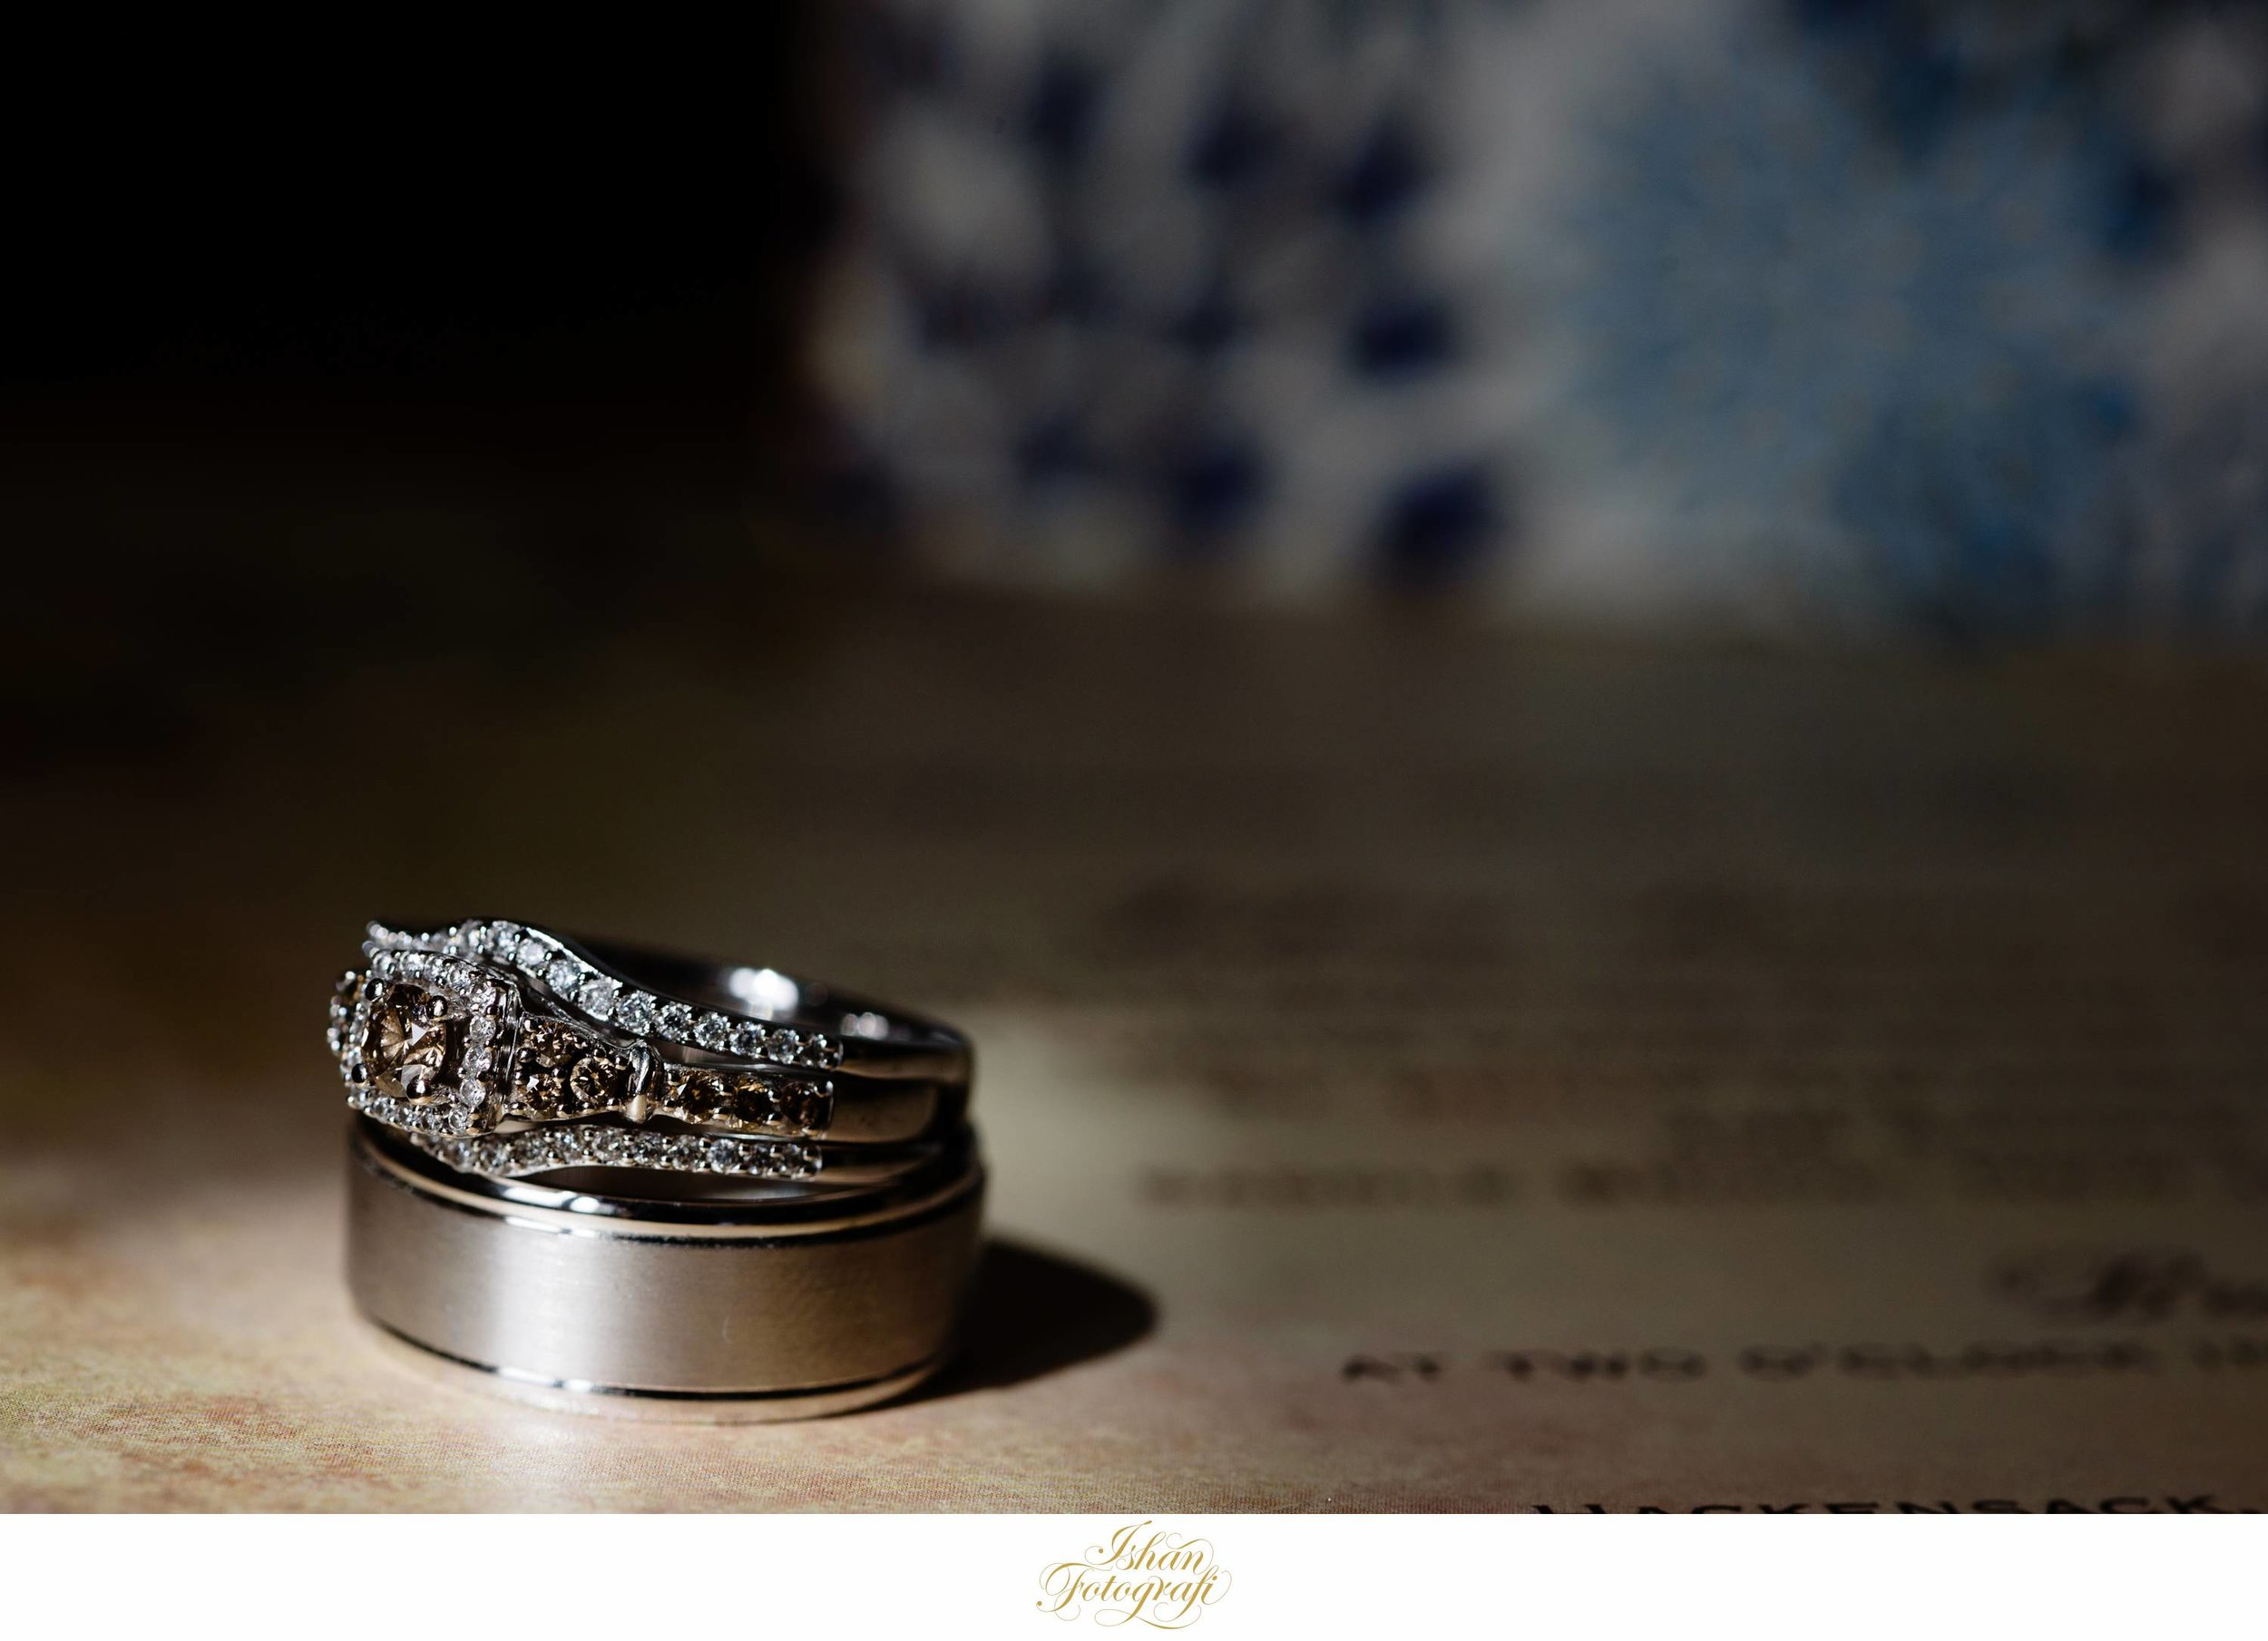 Amanda's stunning engagement ring &Jeffrey's wedding band placed over their invitation cards. We love incorporating personal items while photographing details.